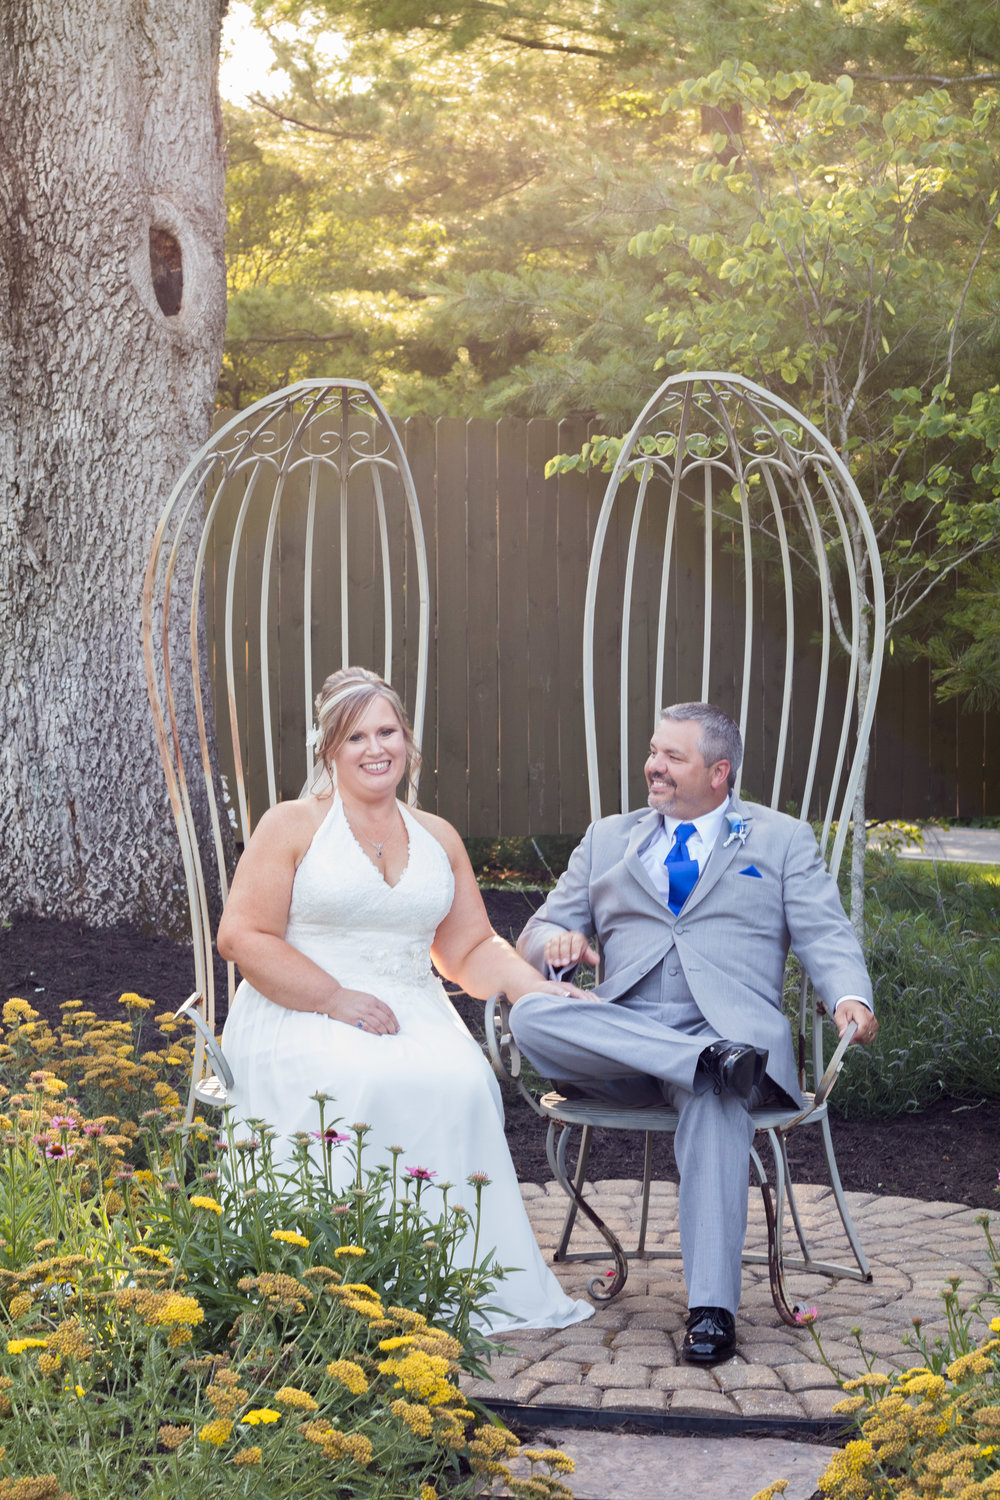 Newlywed Photos